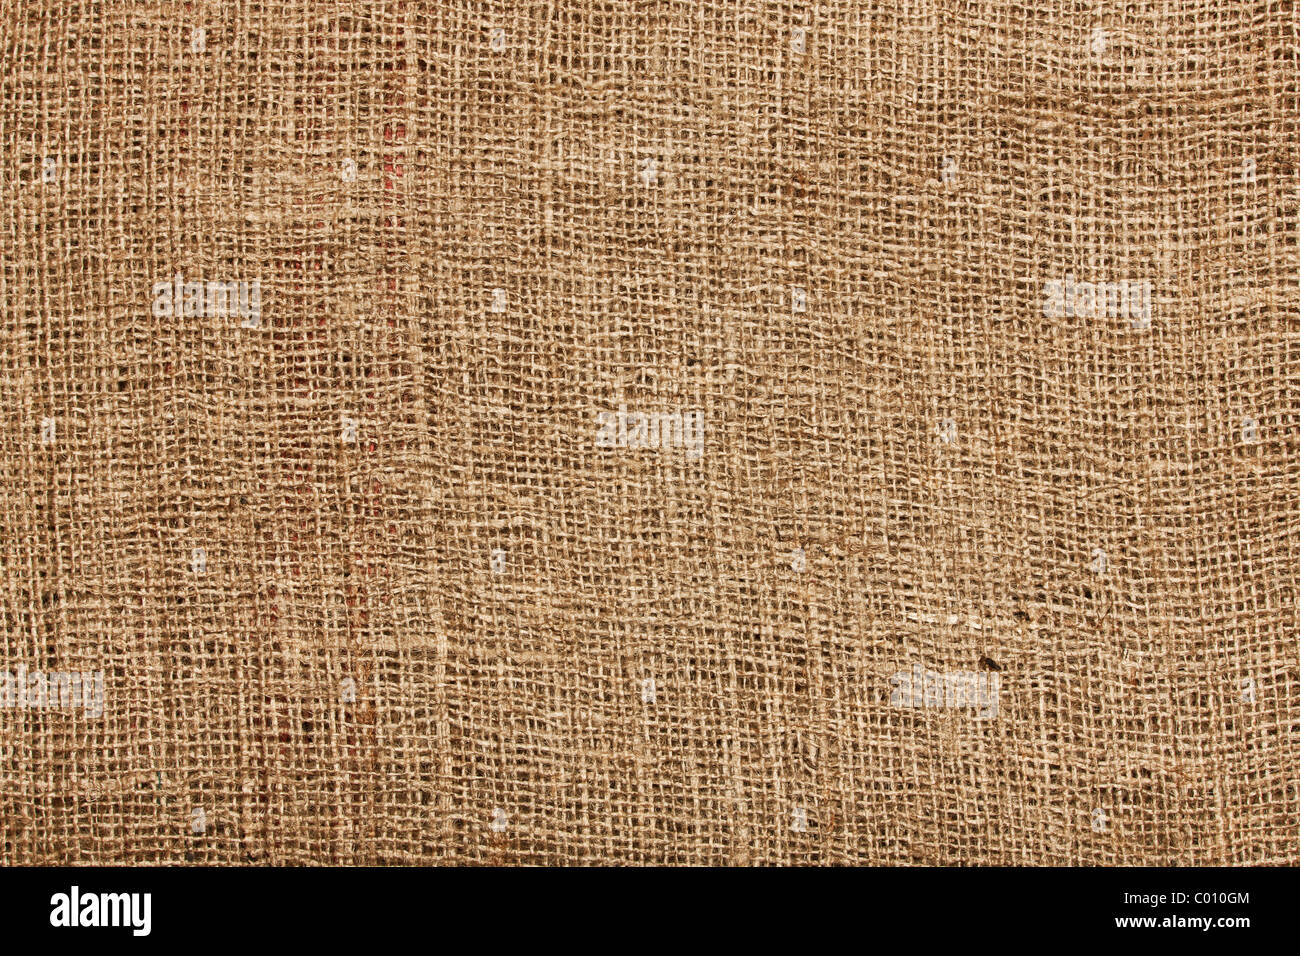 Background image with coarse canvas fabric - Stock Image